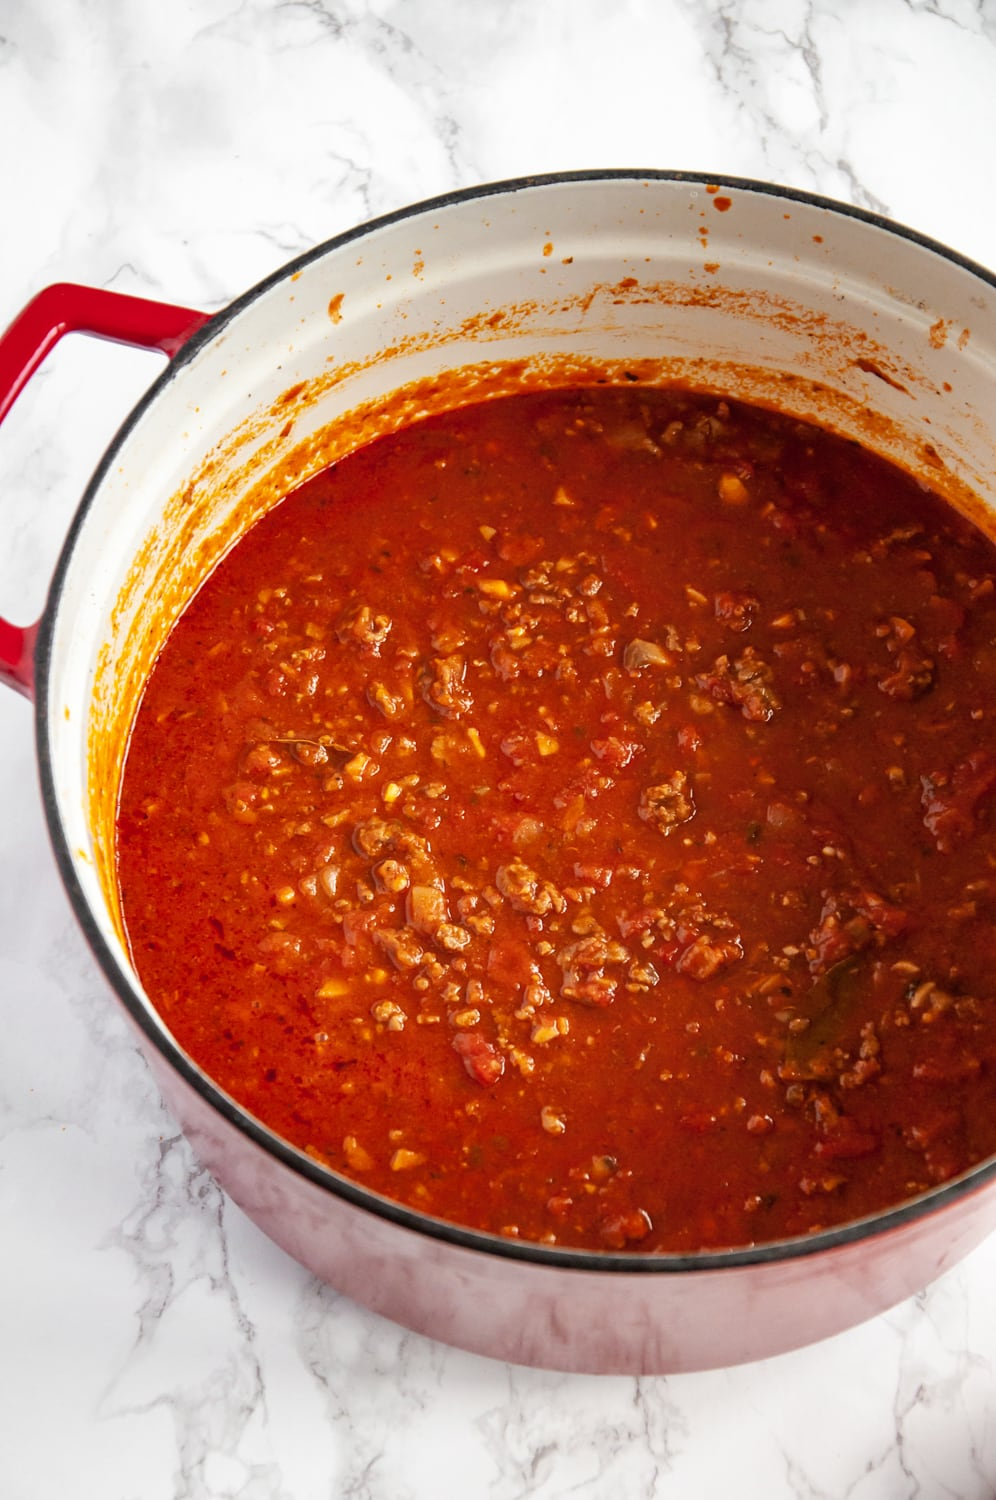 red sauce in a red cooking pot